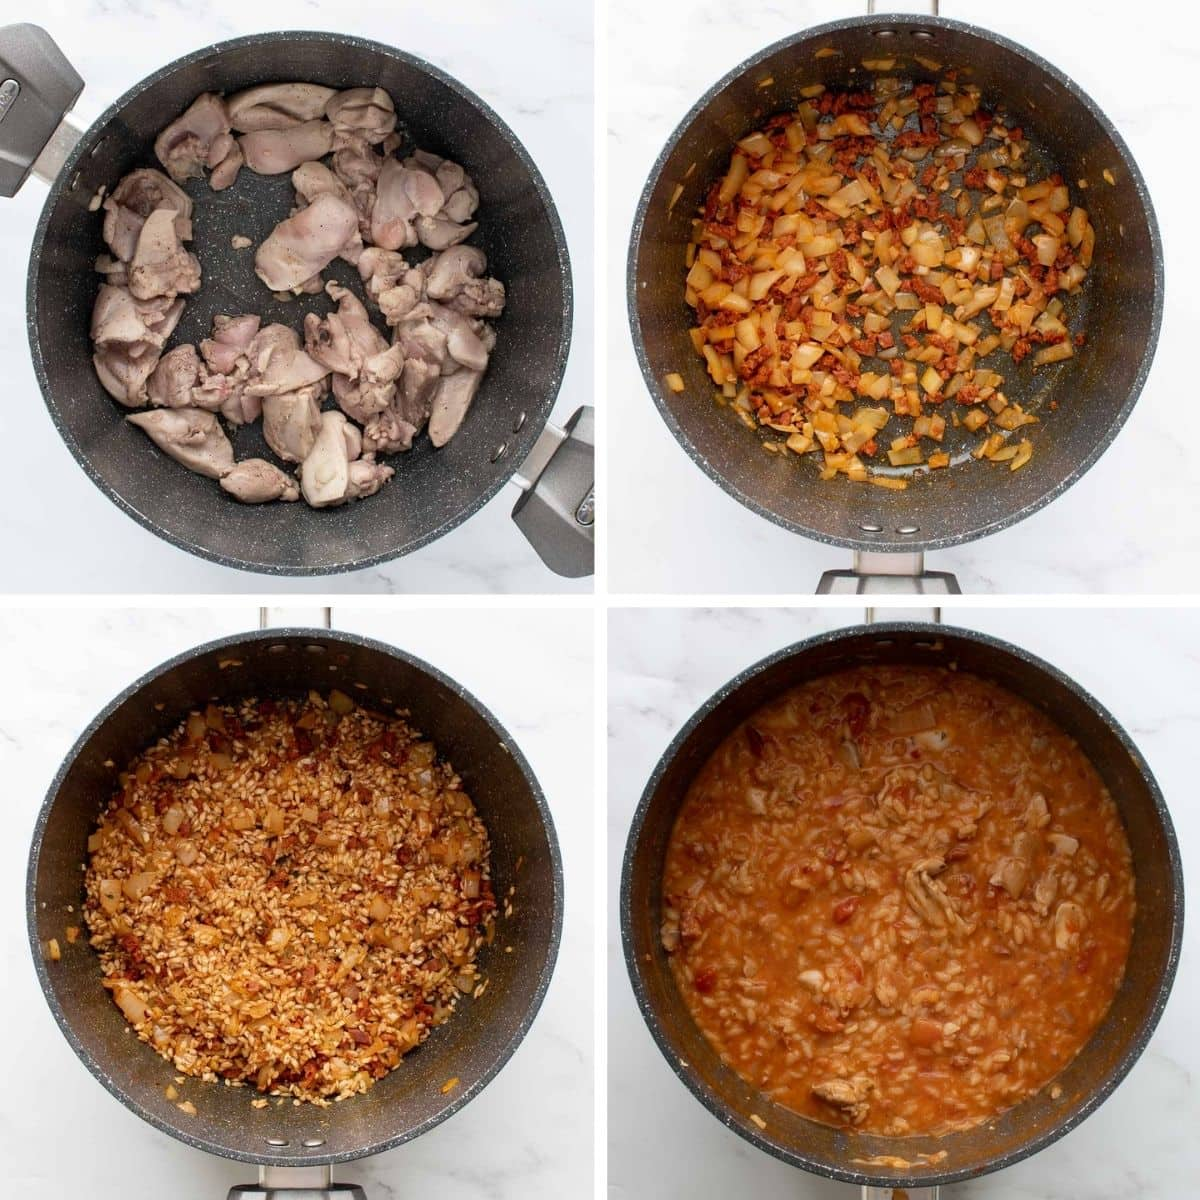 Step by step images showing how to make risotto with chicken and chorizo.